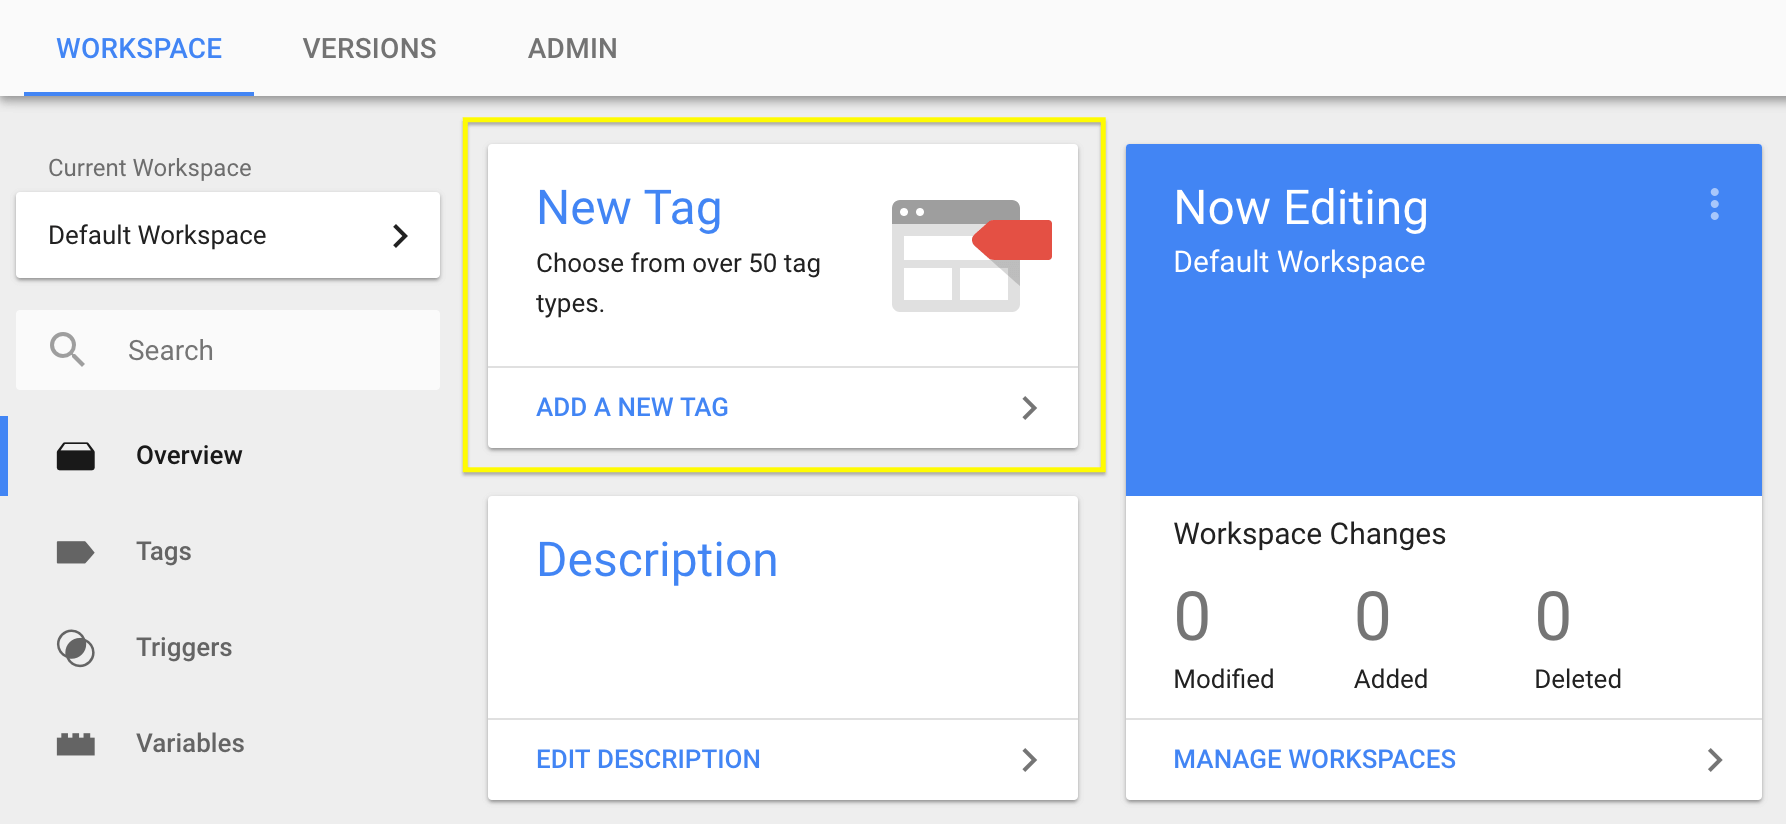 The New Tag link in the Google Tag Manager interface.